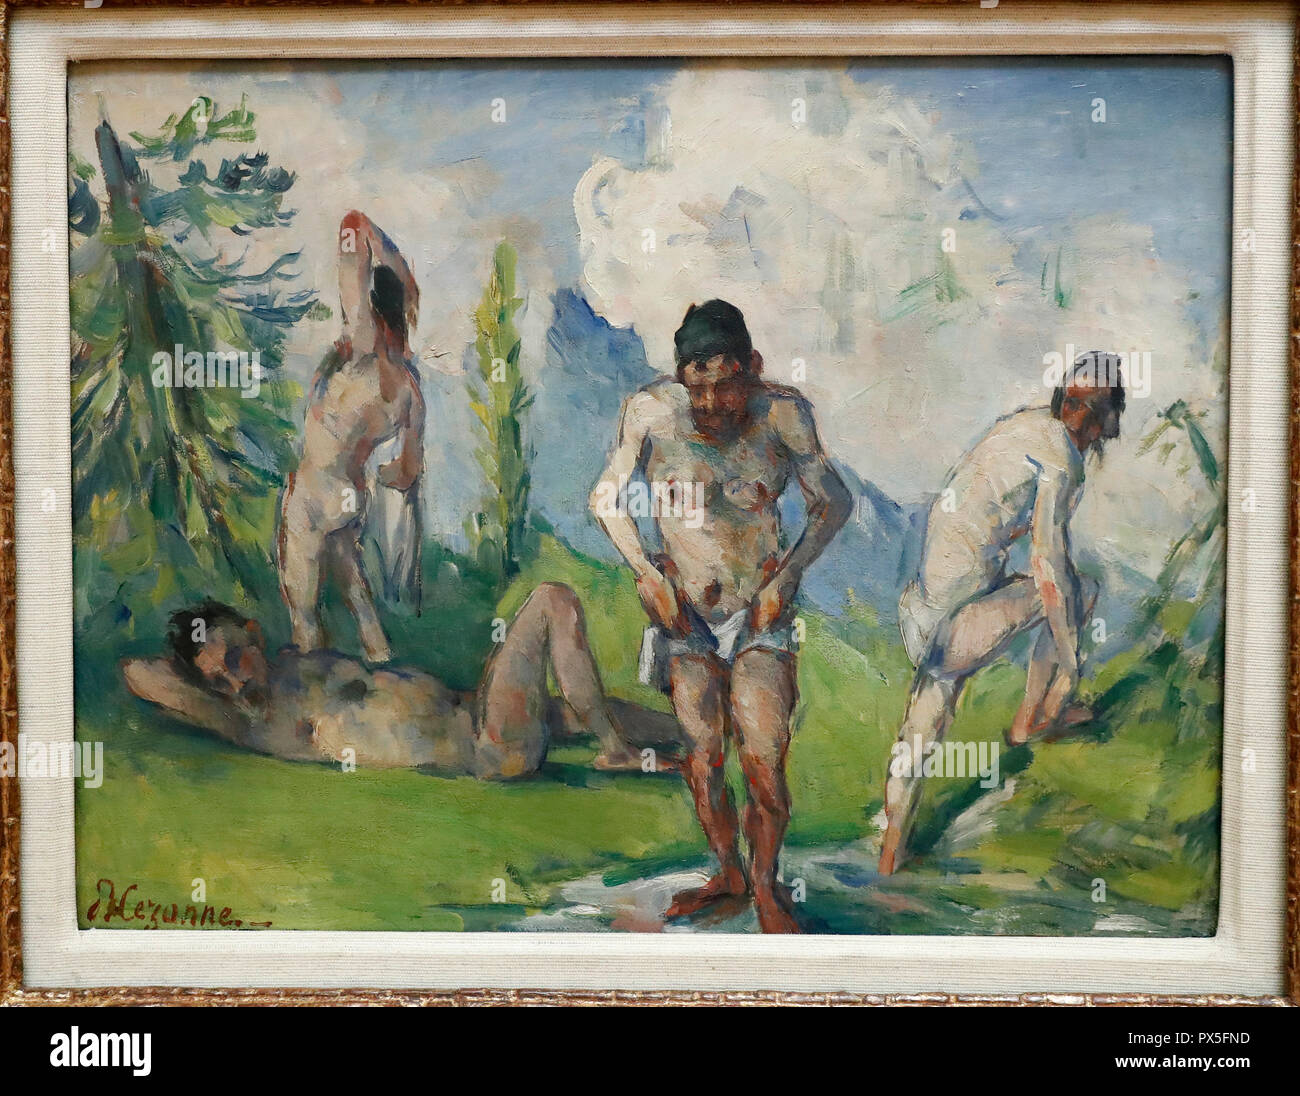 Museum of Art and History. Baigneurs au repos. 1876-1878. Oil on canvas. Paul Cezanne.  Geneva. Switzerland. - Stock Image